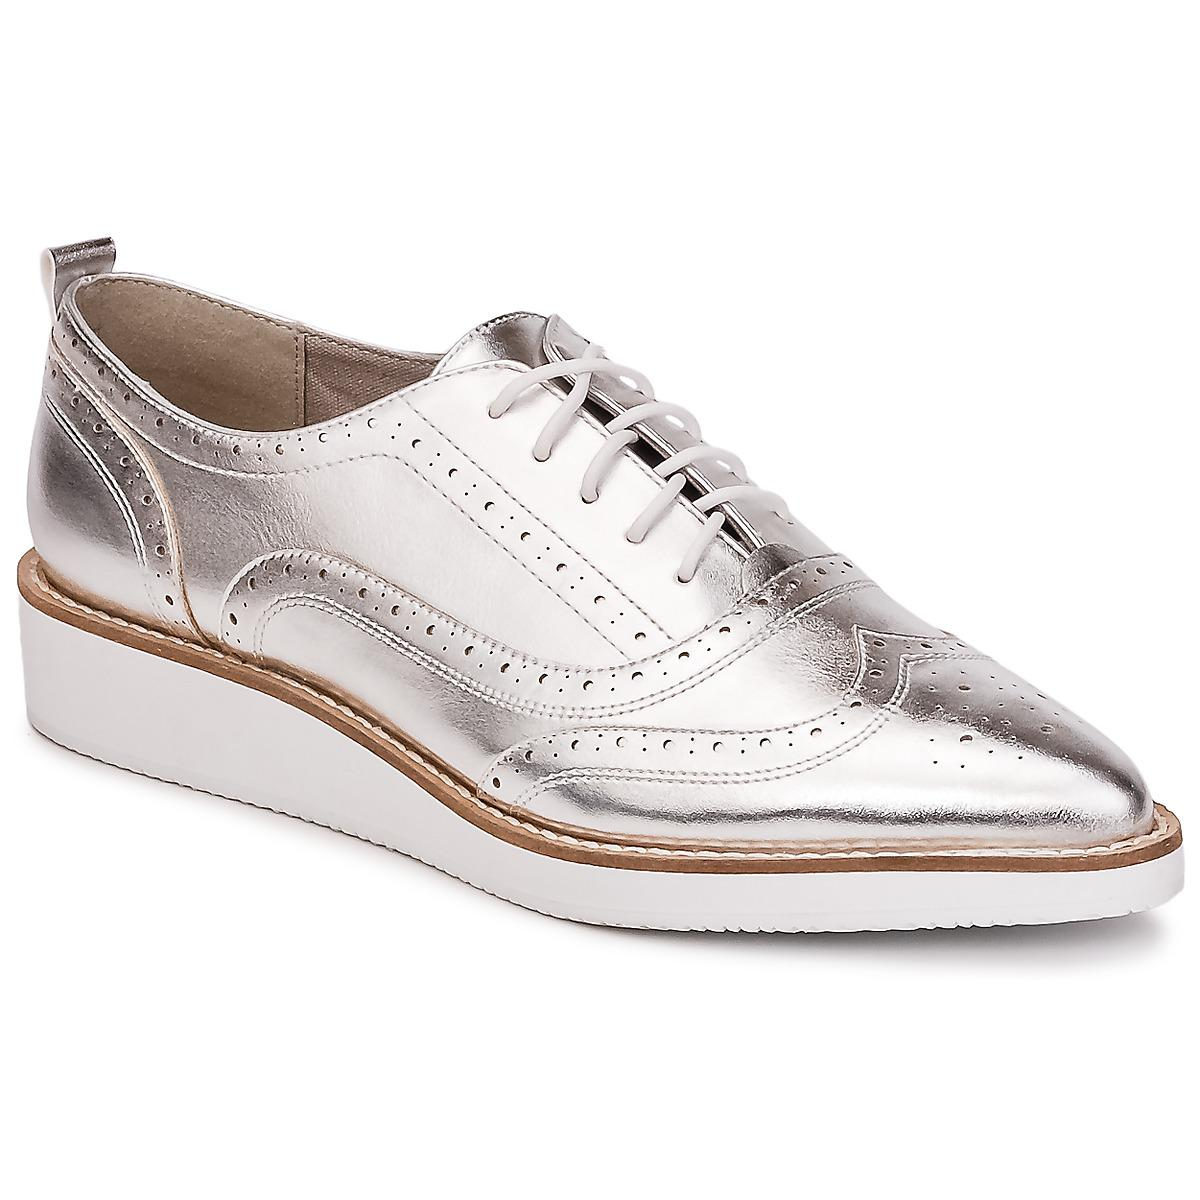 Kurt Geiger KNOXY- women's Smart / Formal Shoes in Free Shipping Finishline Cheap Sale Order Uk3uqR0L